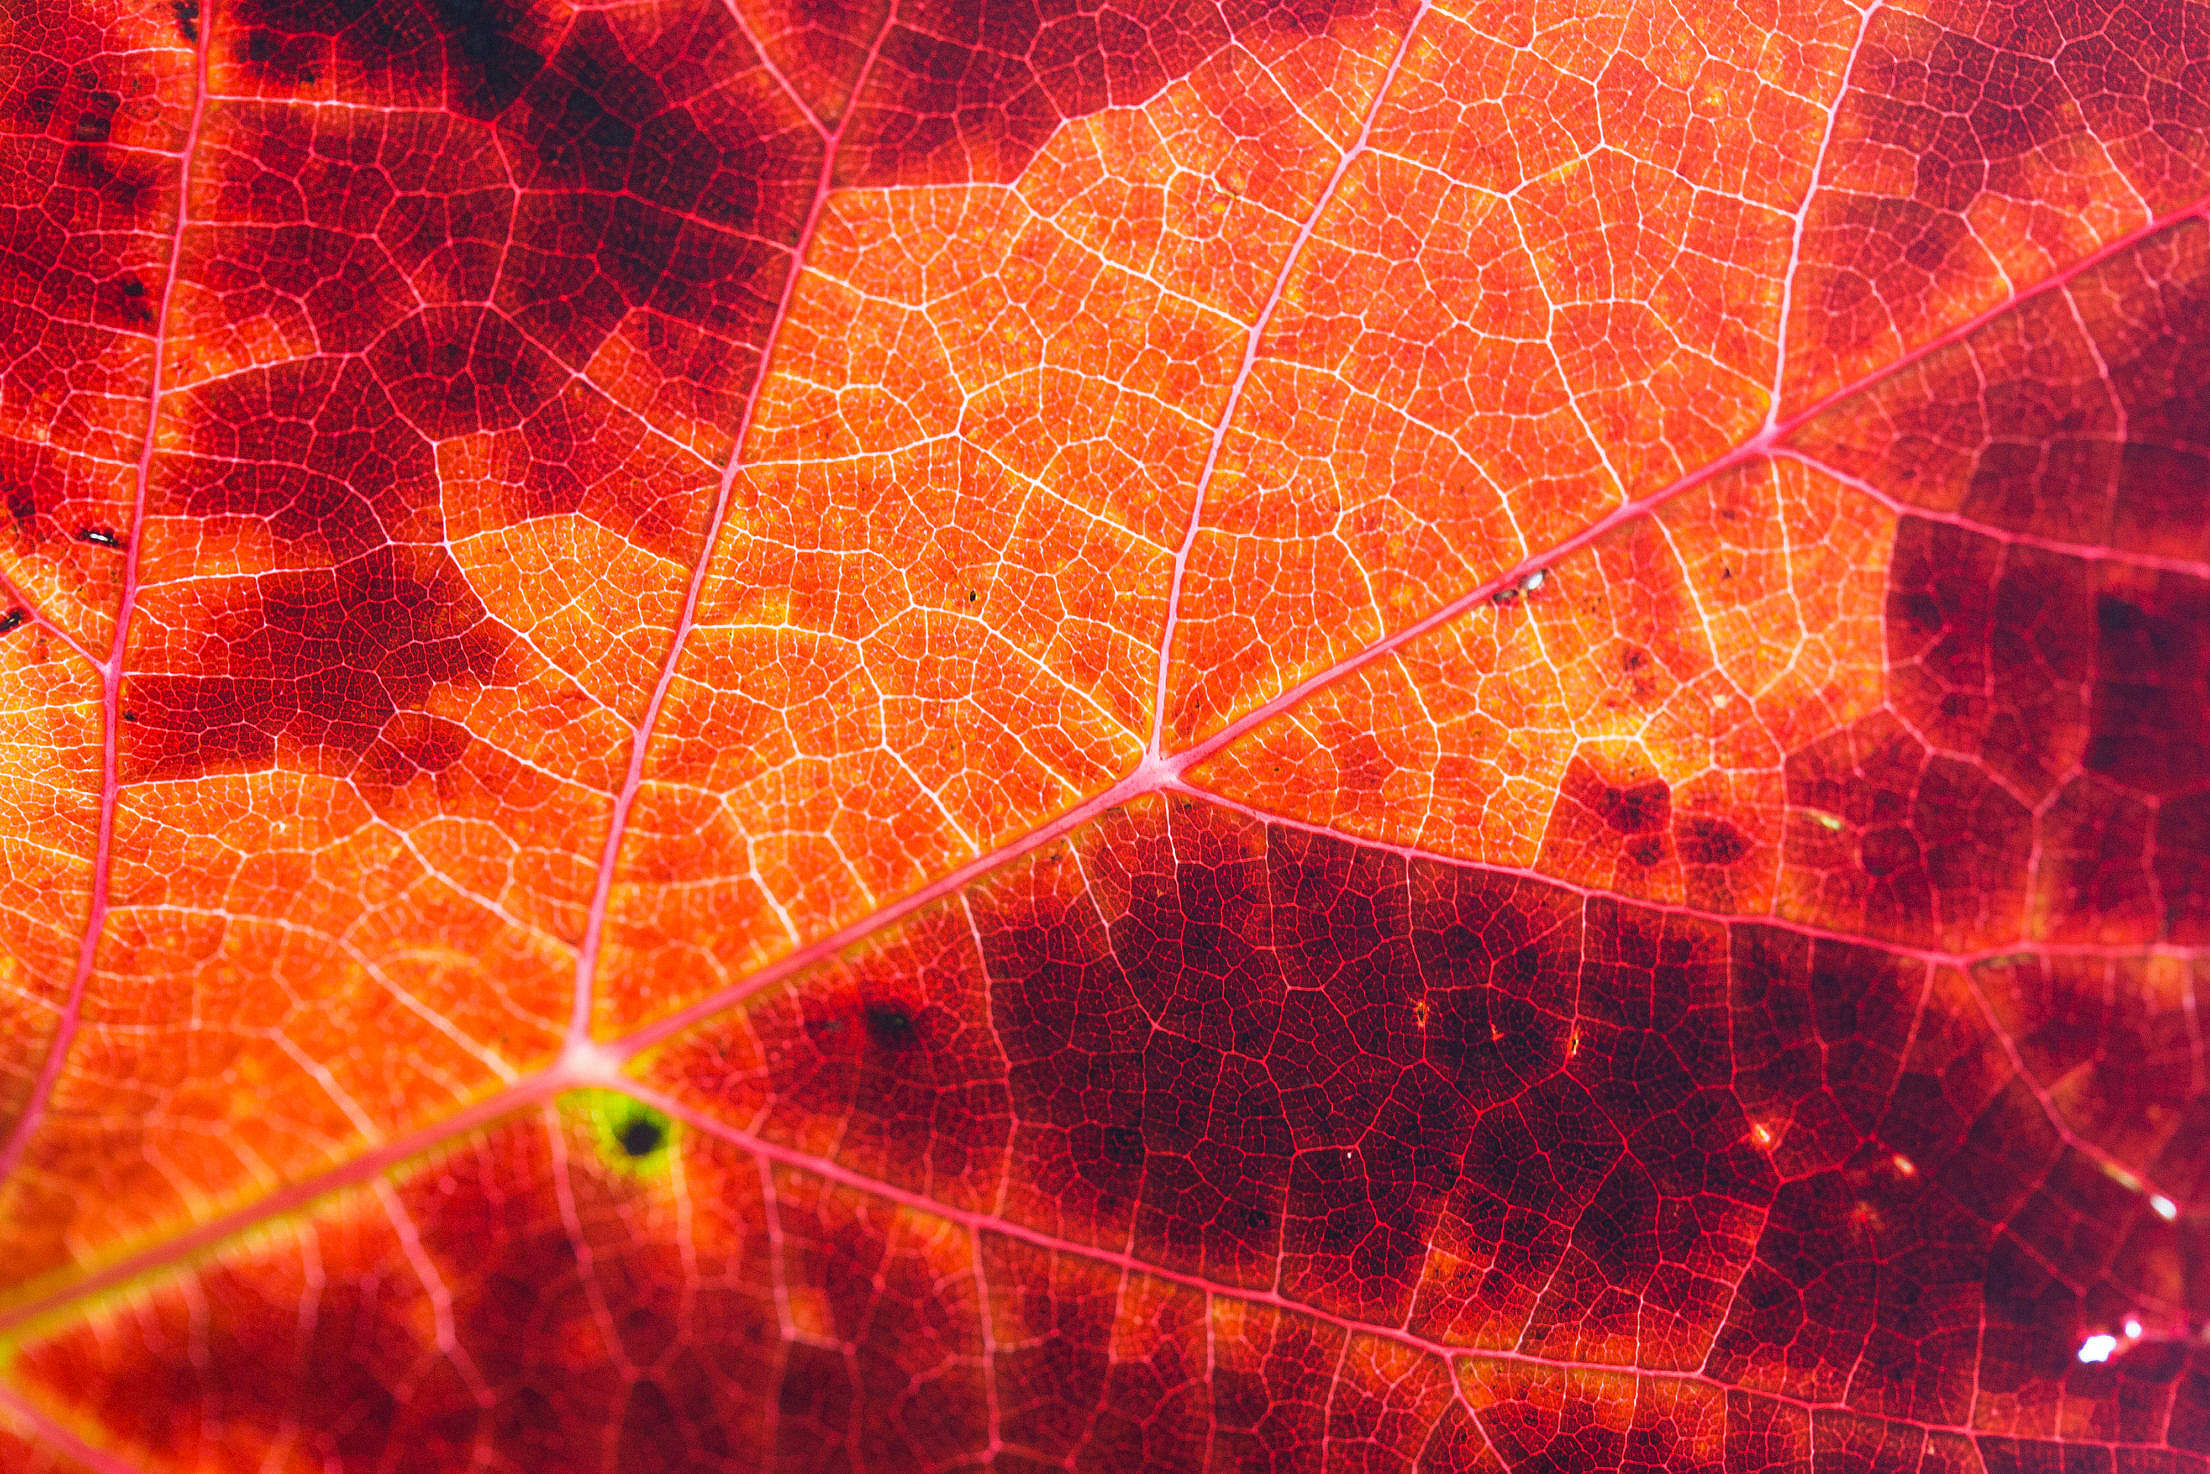 Red Autumn Leaf Structure Background Free Stock Photo